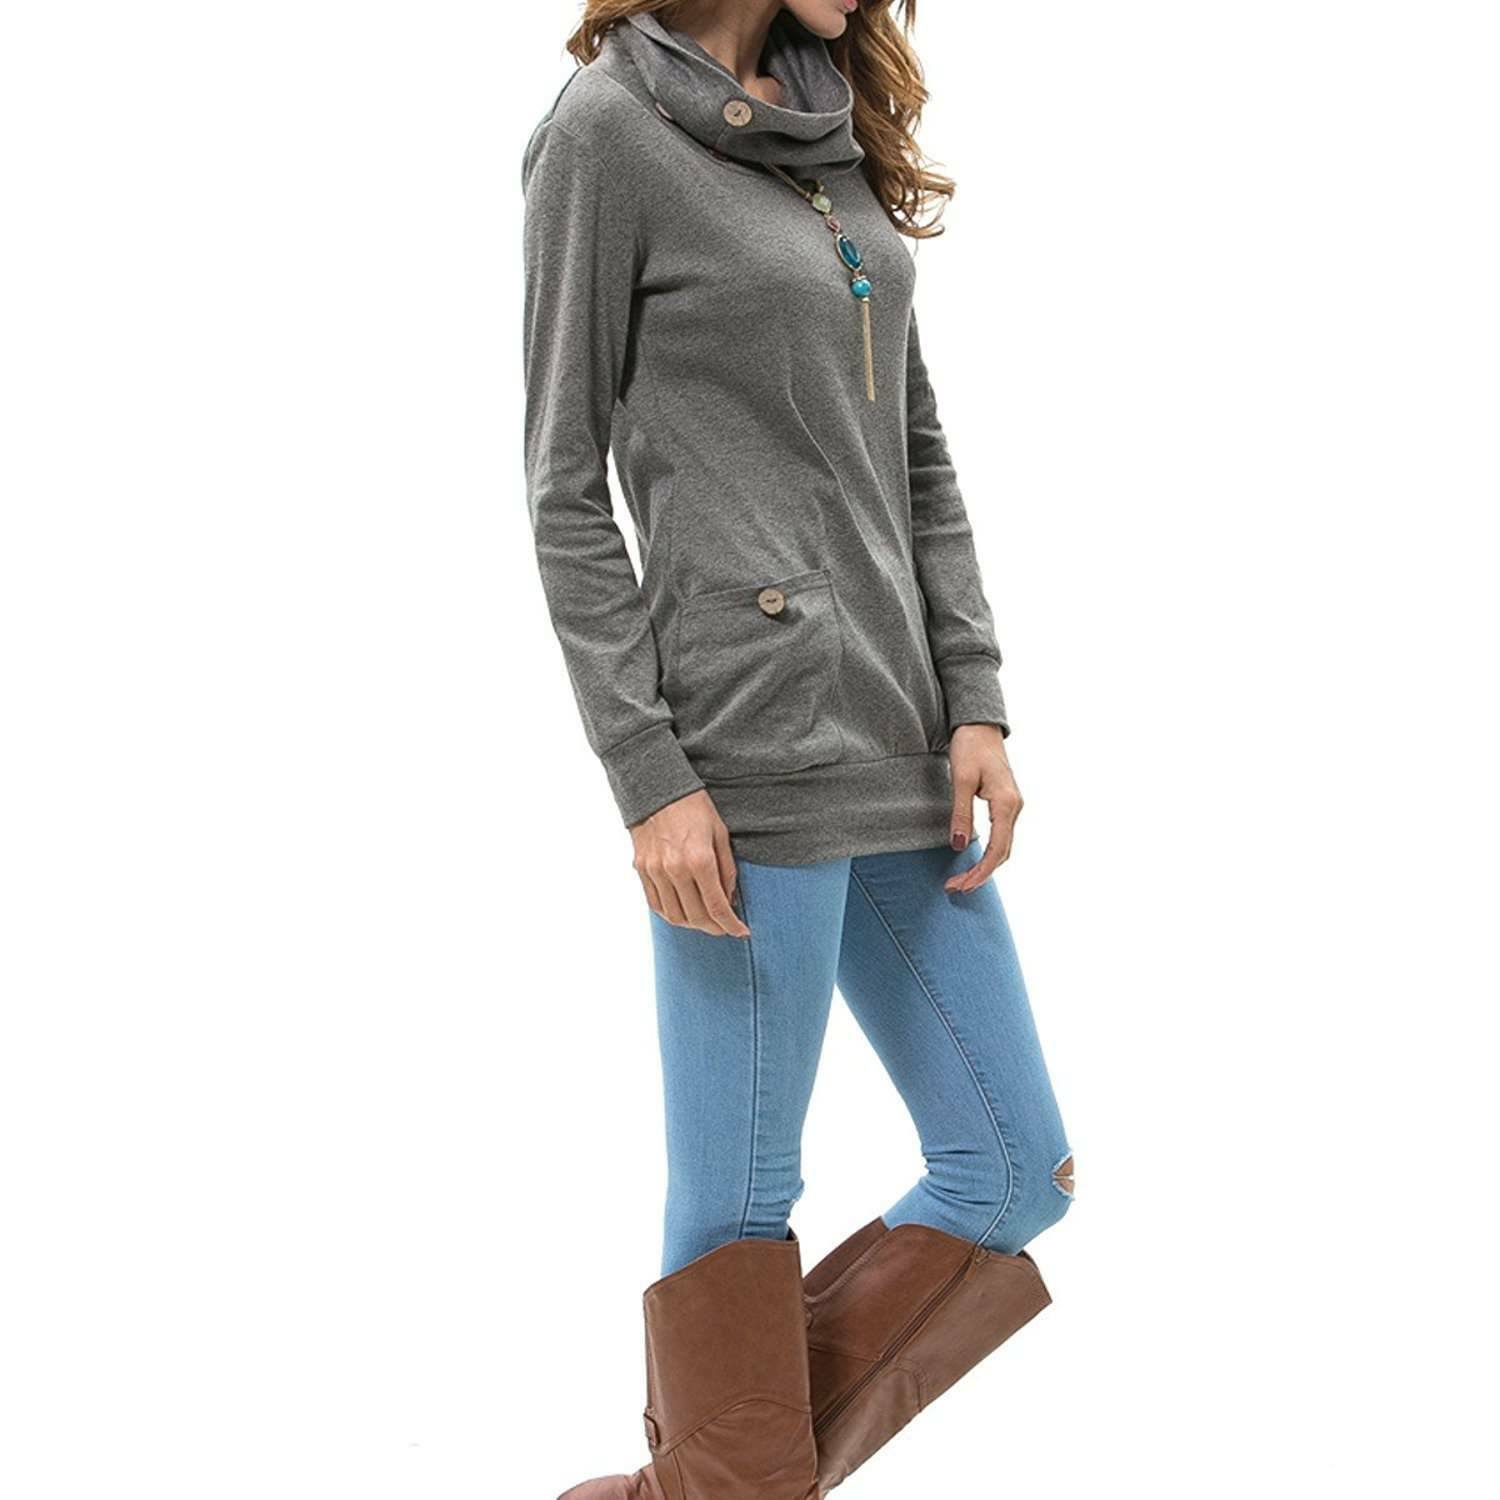 Levaca Womens Long Sleeve Button Cowl Neck Casual Tunic Top